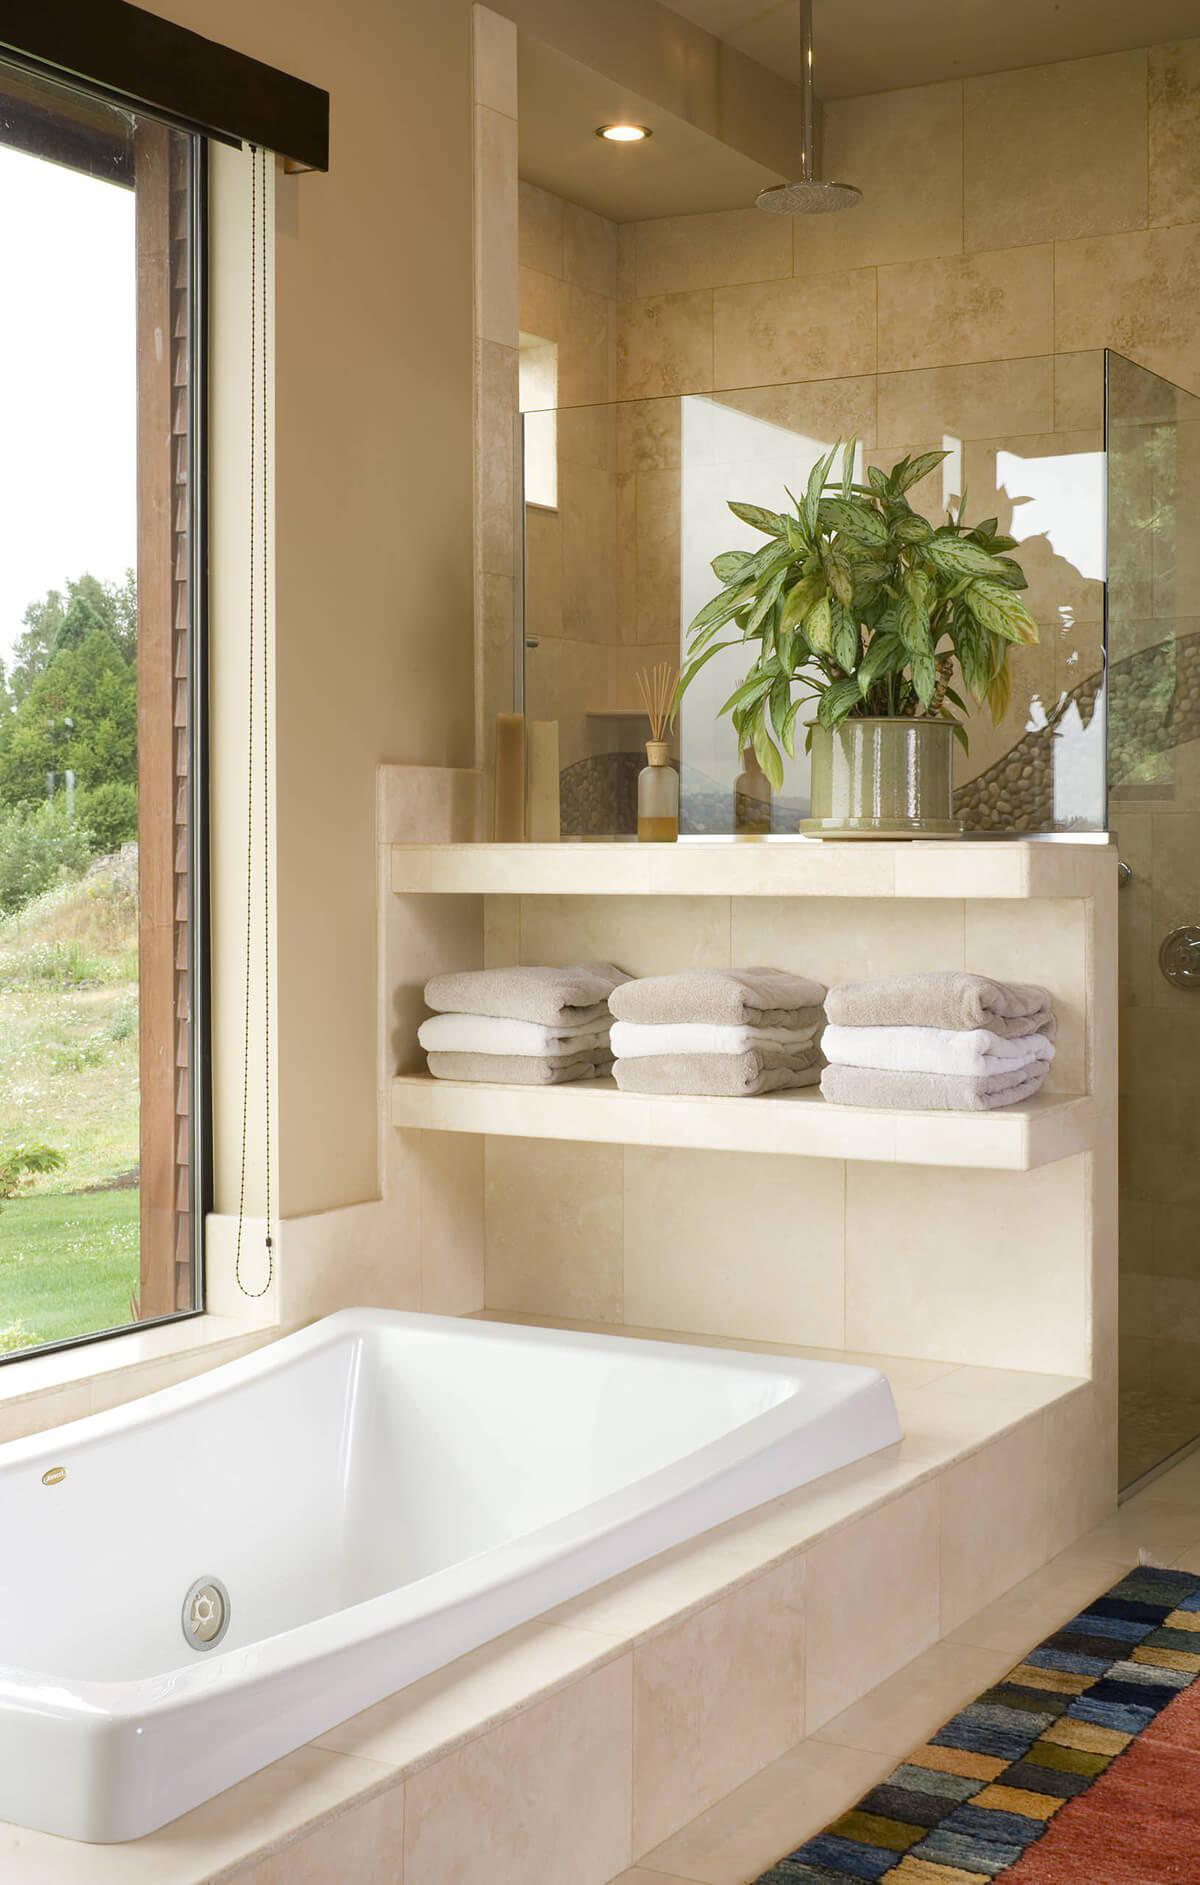 Tiled Floating Built-in Bathroom Shelf